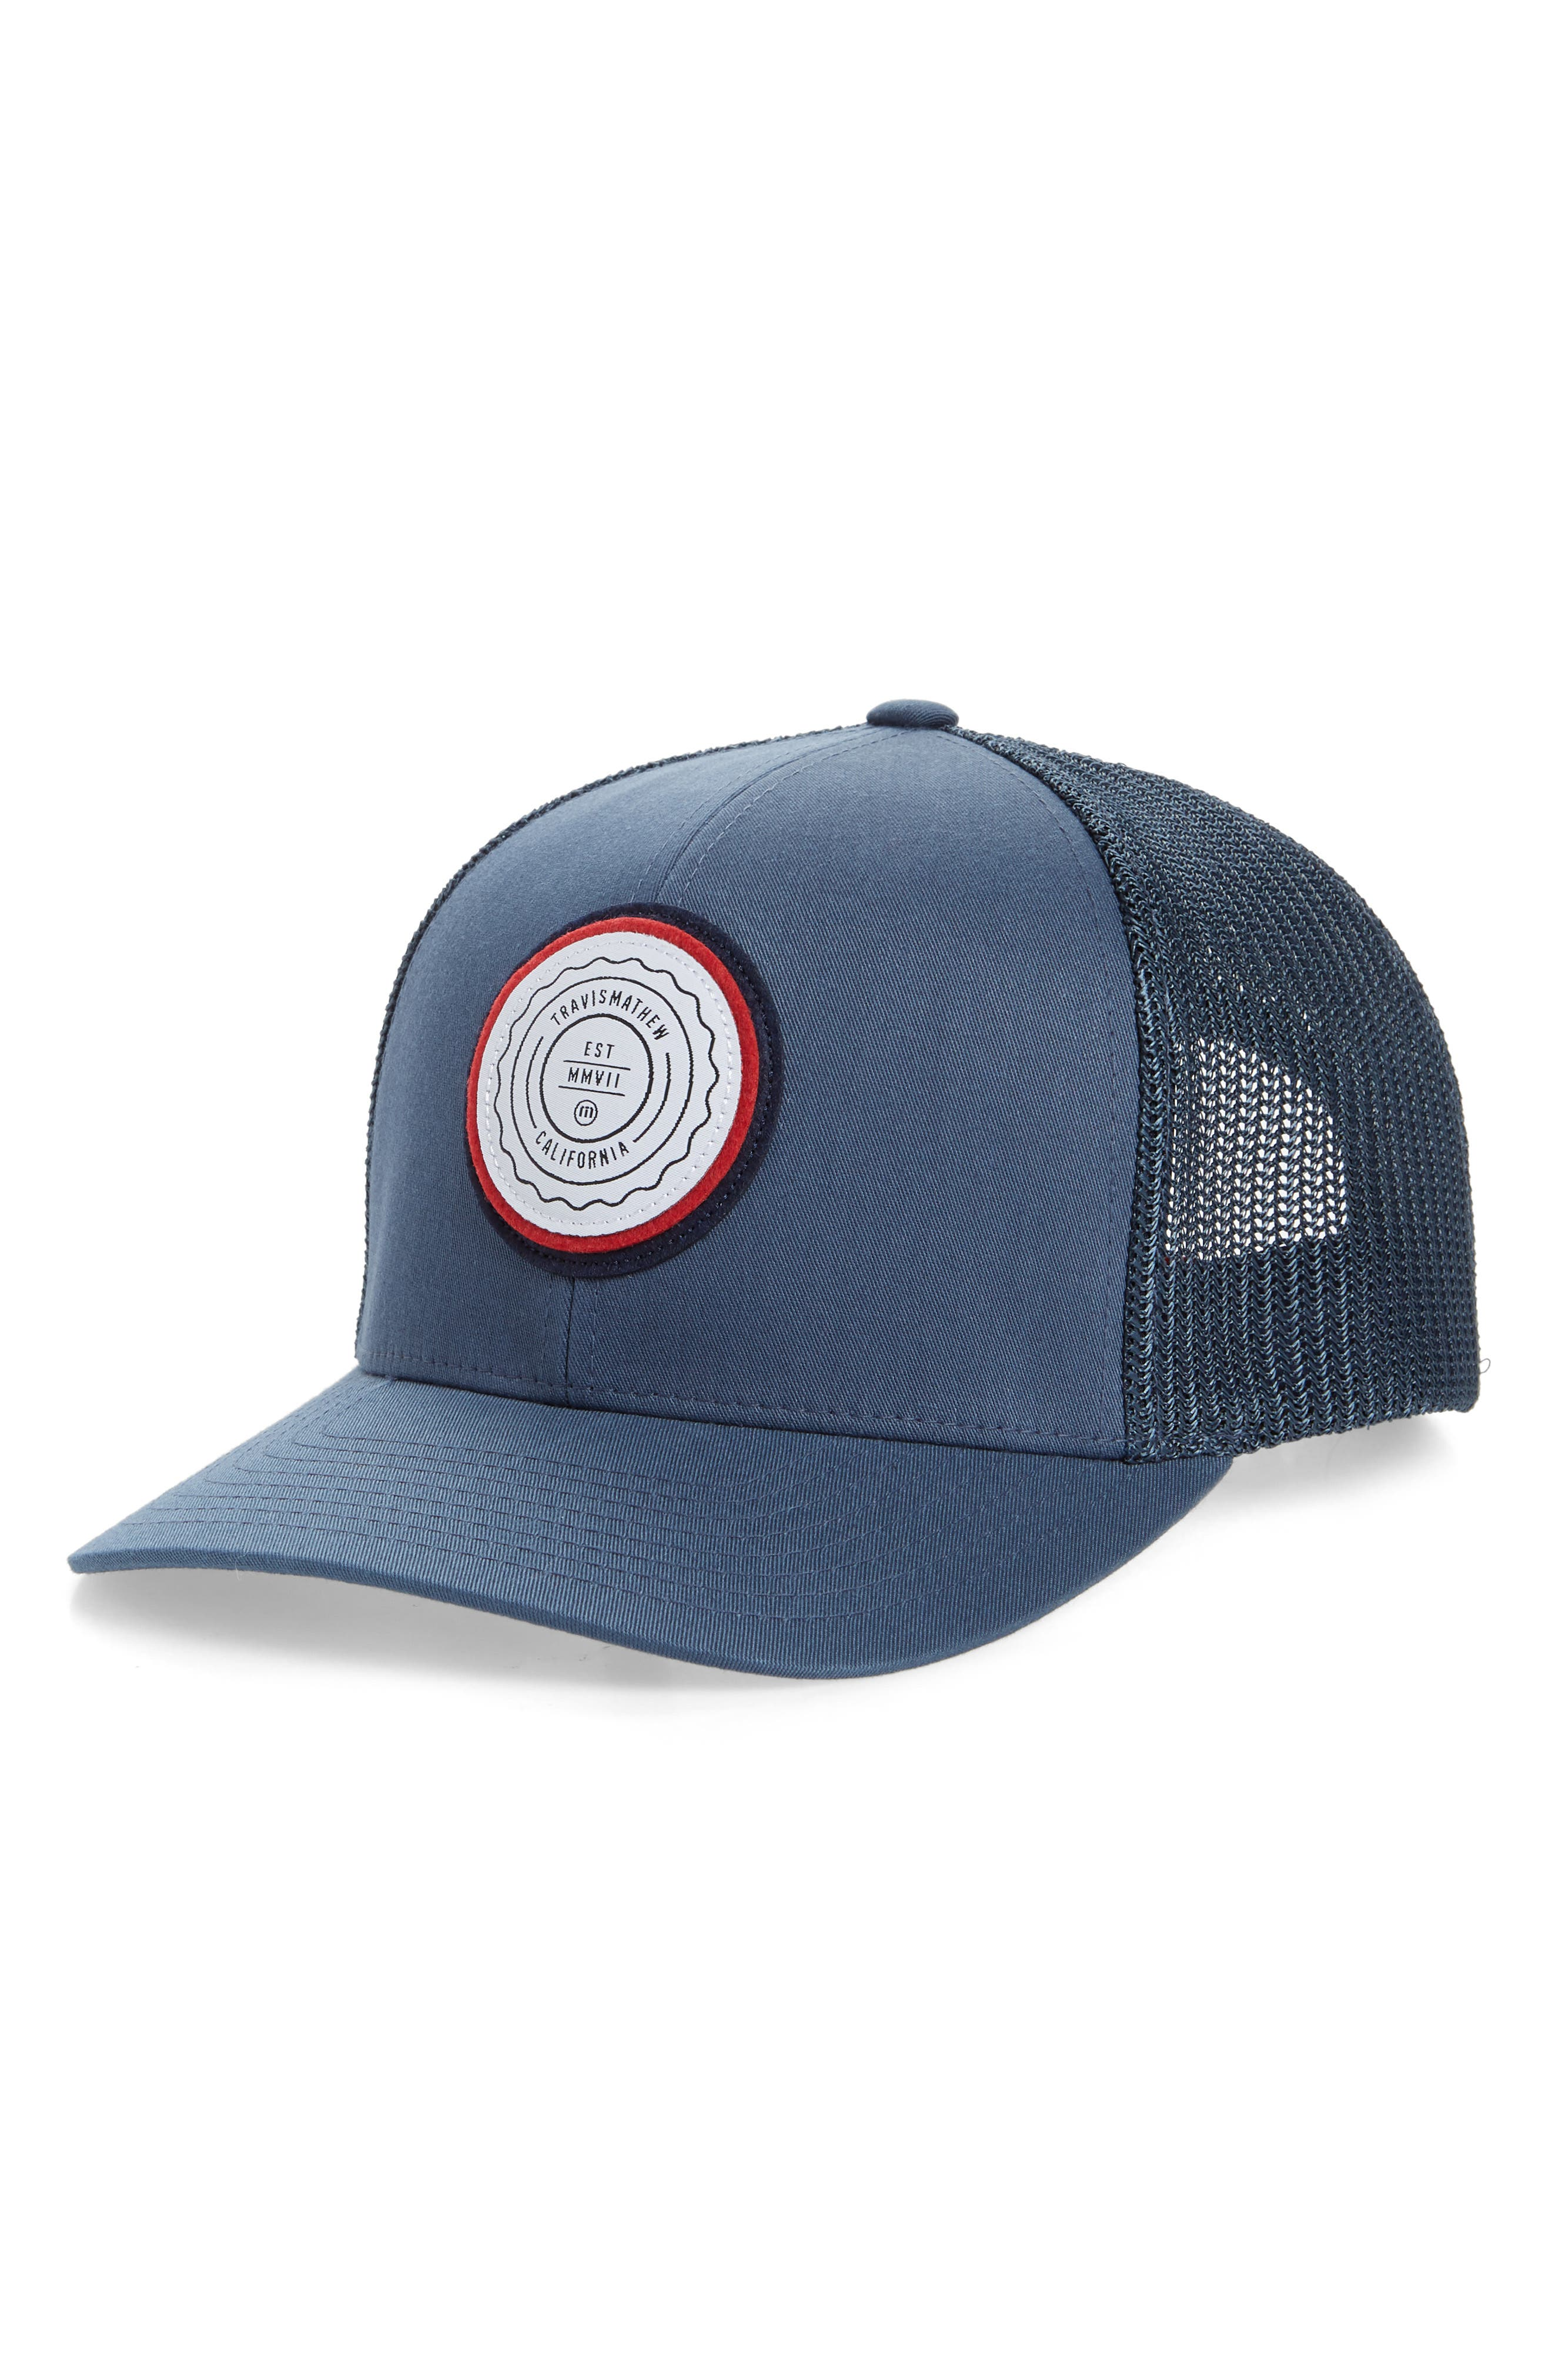 A bold brand patch stamps a classic trucker hat designed for versatile appeal. Style Name: Travismathew The Patch Trucker Hat. Style Number: 5967705. Available in stores.